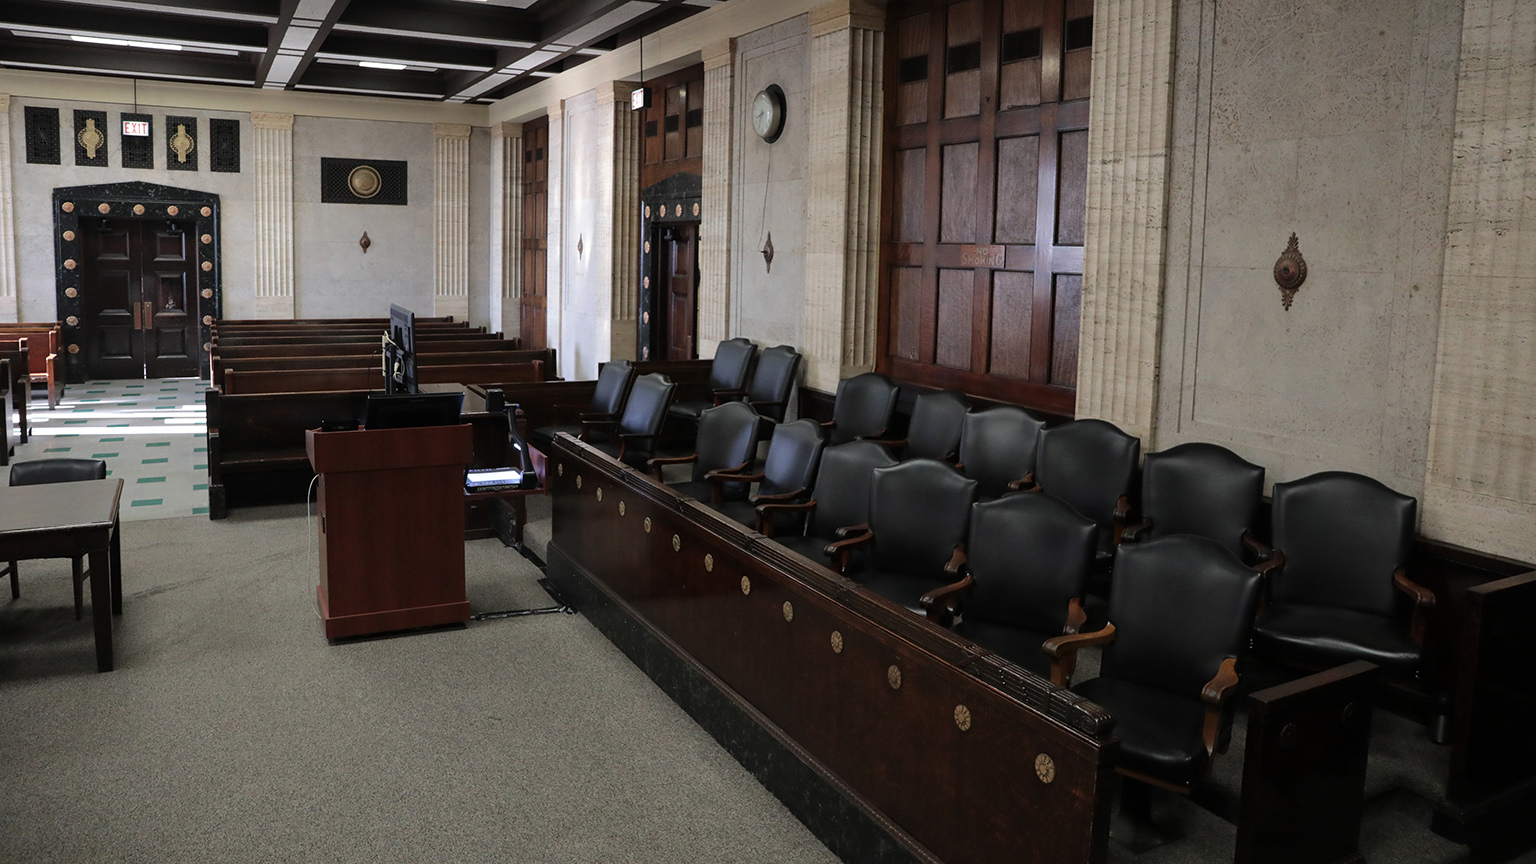 Empty jury box area readied for members of the jury in the courtroom of Judge Vincent Gaughan at the Leighton Criminal Court Building on Tuesday, Sept. 4, 2018. (Antonio Perez / Pool / Chicago Tribune)